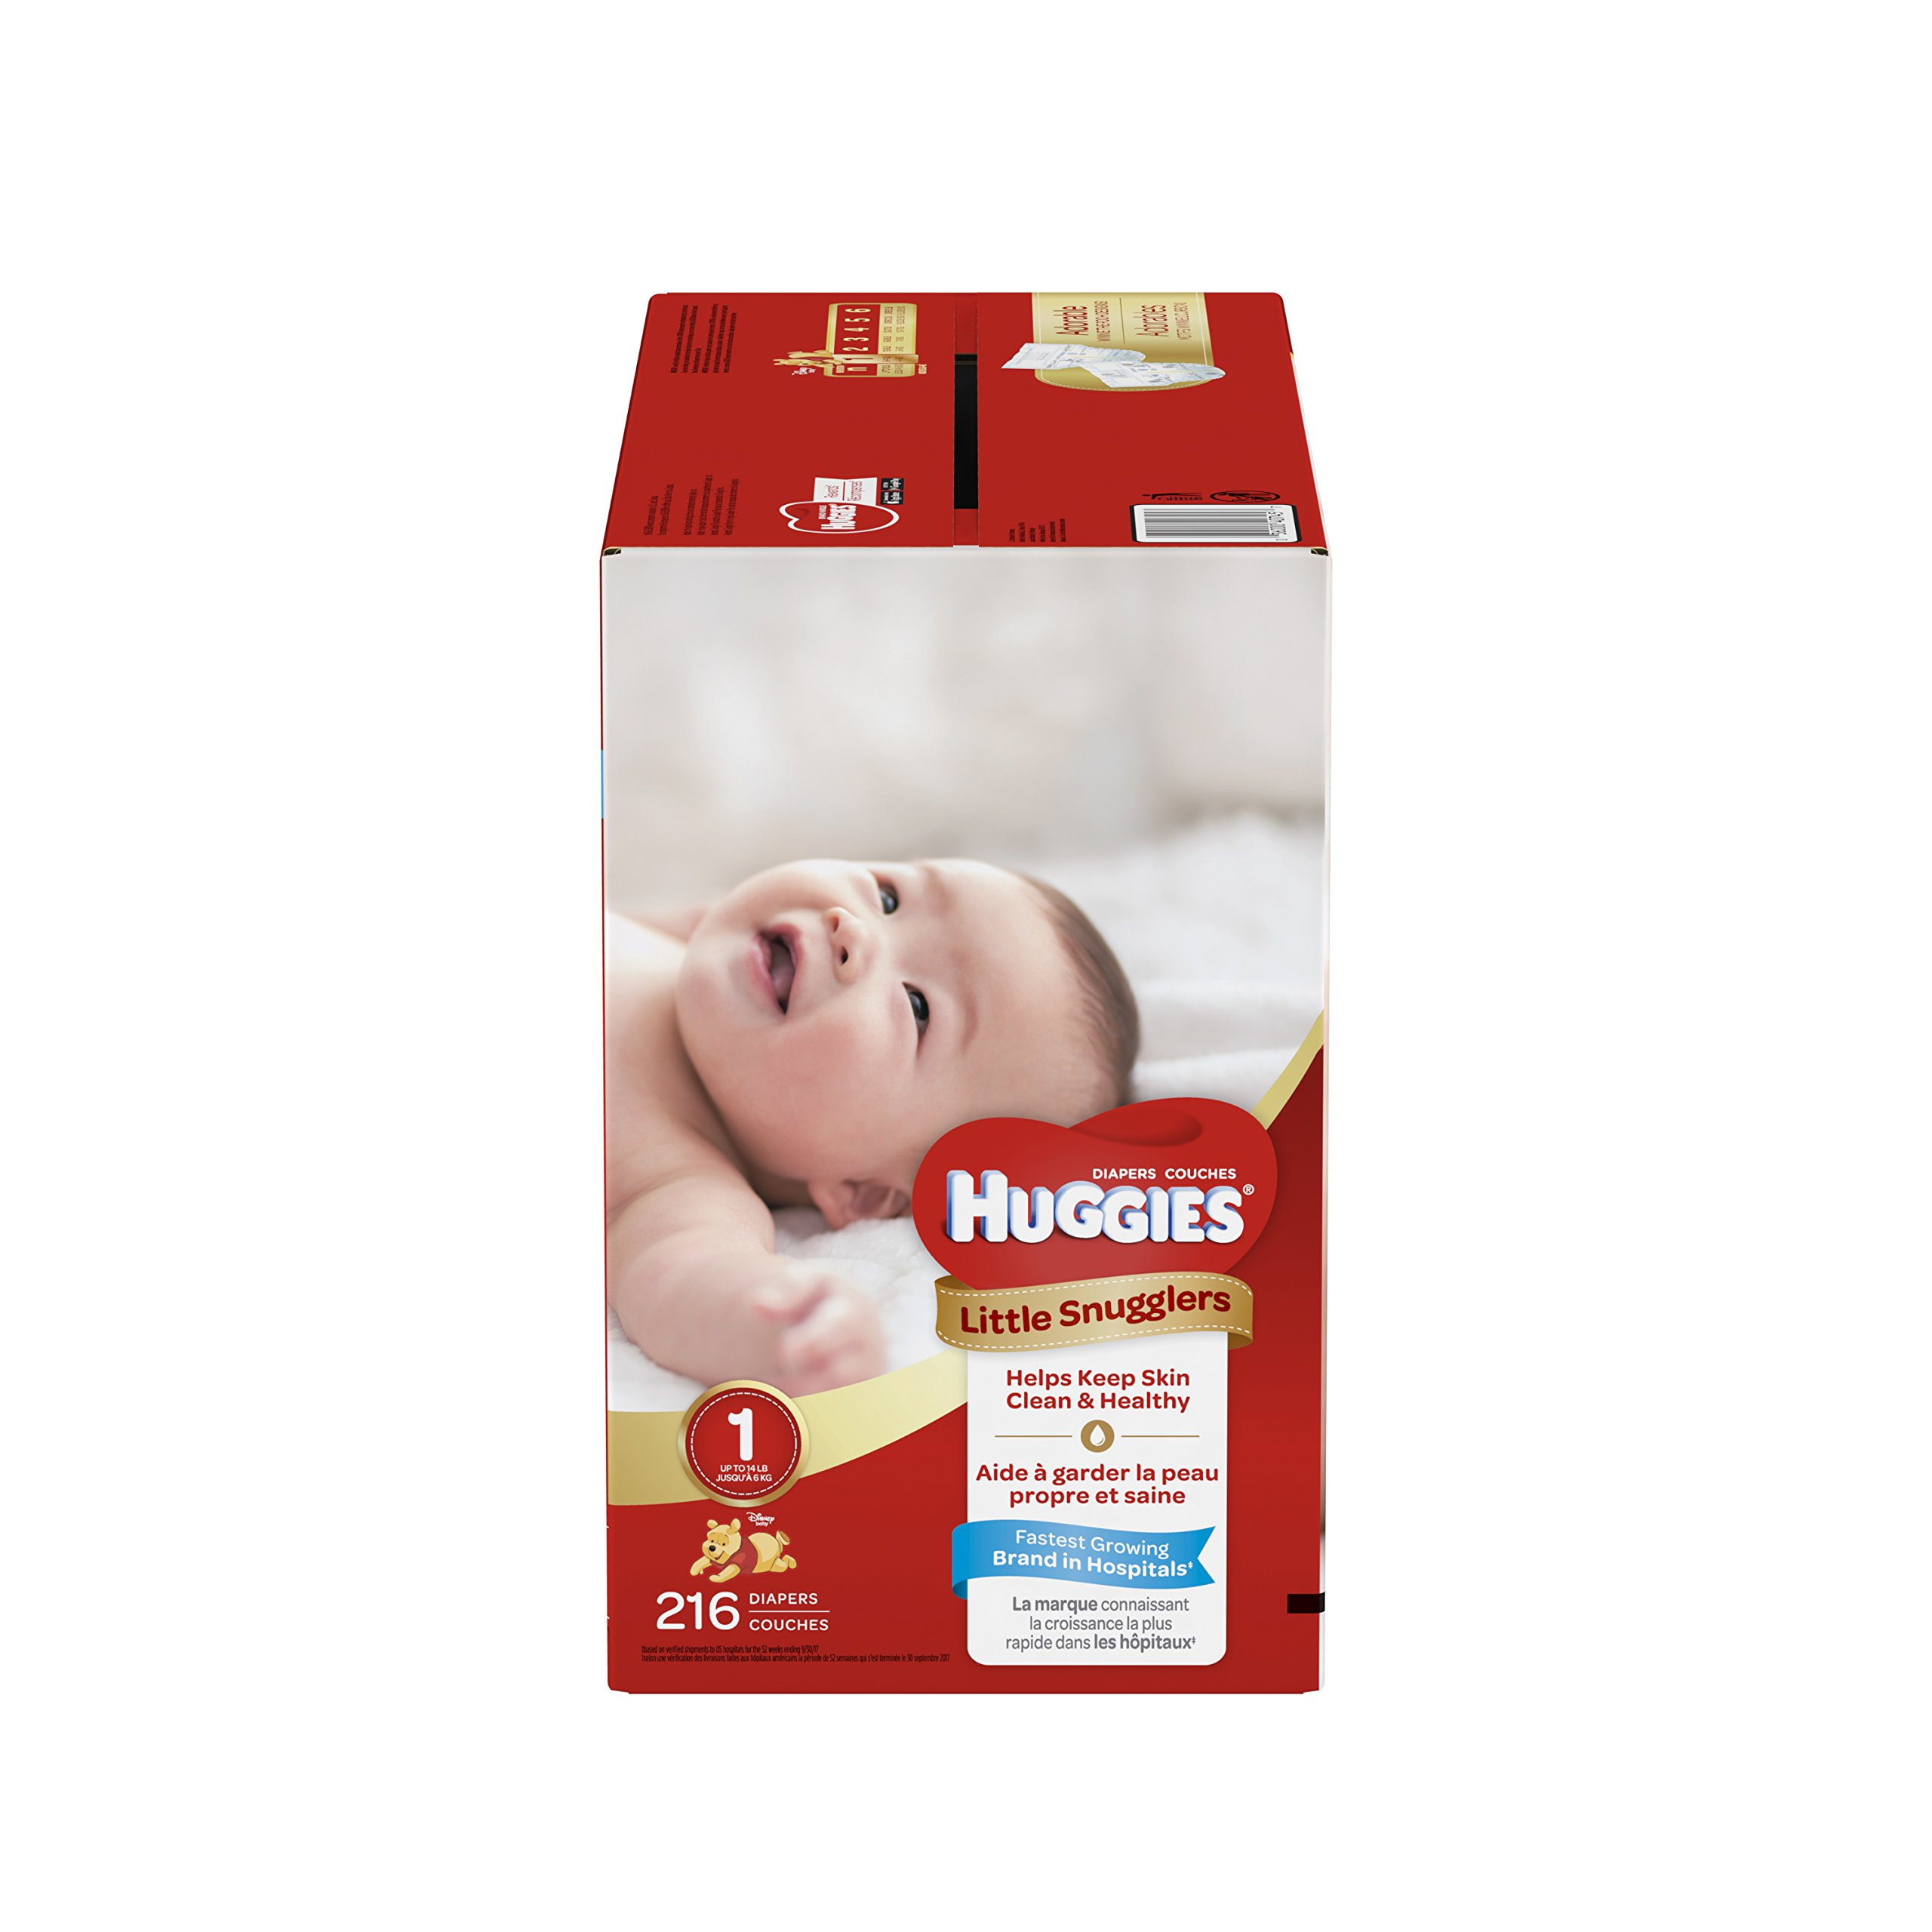 HUGGIES Little Snugglers Baby Diapers, Size 1, for 8-14 lbs, One